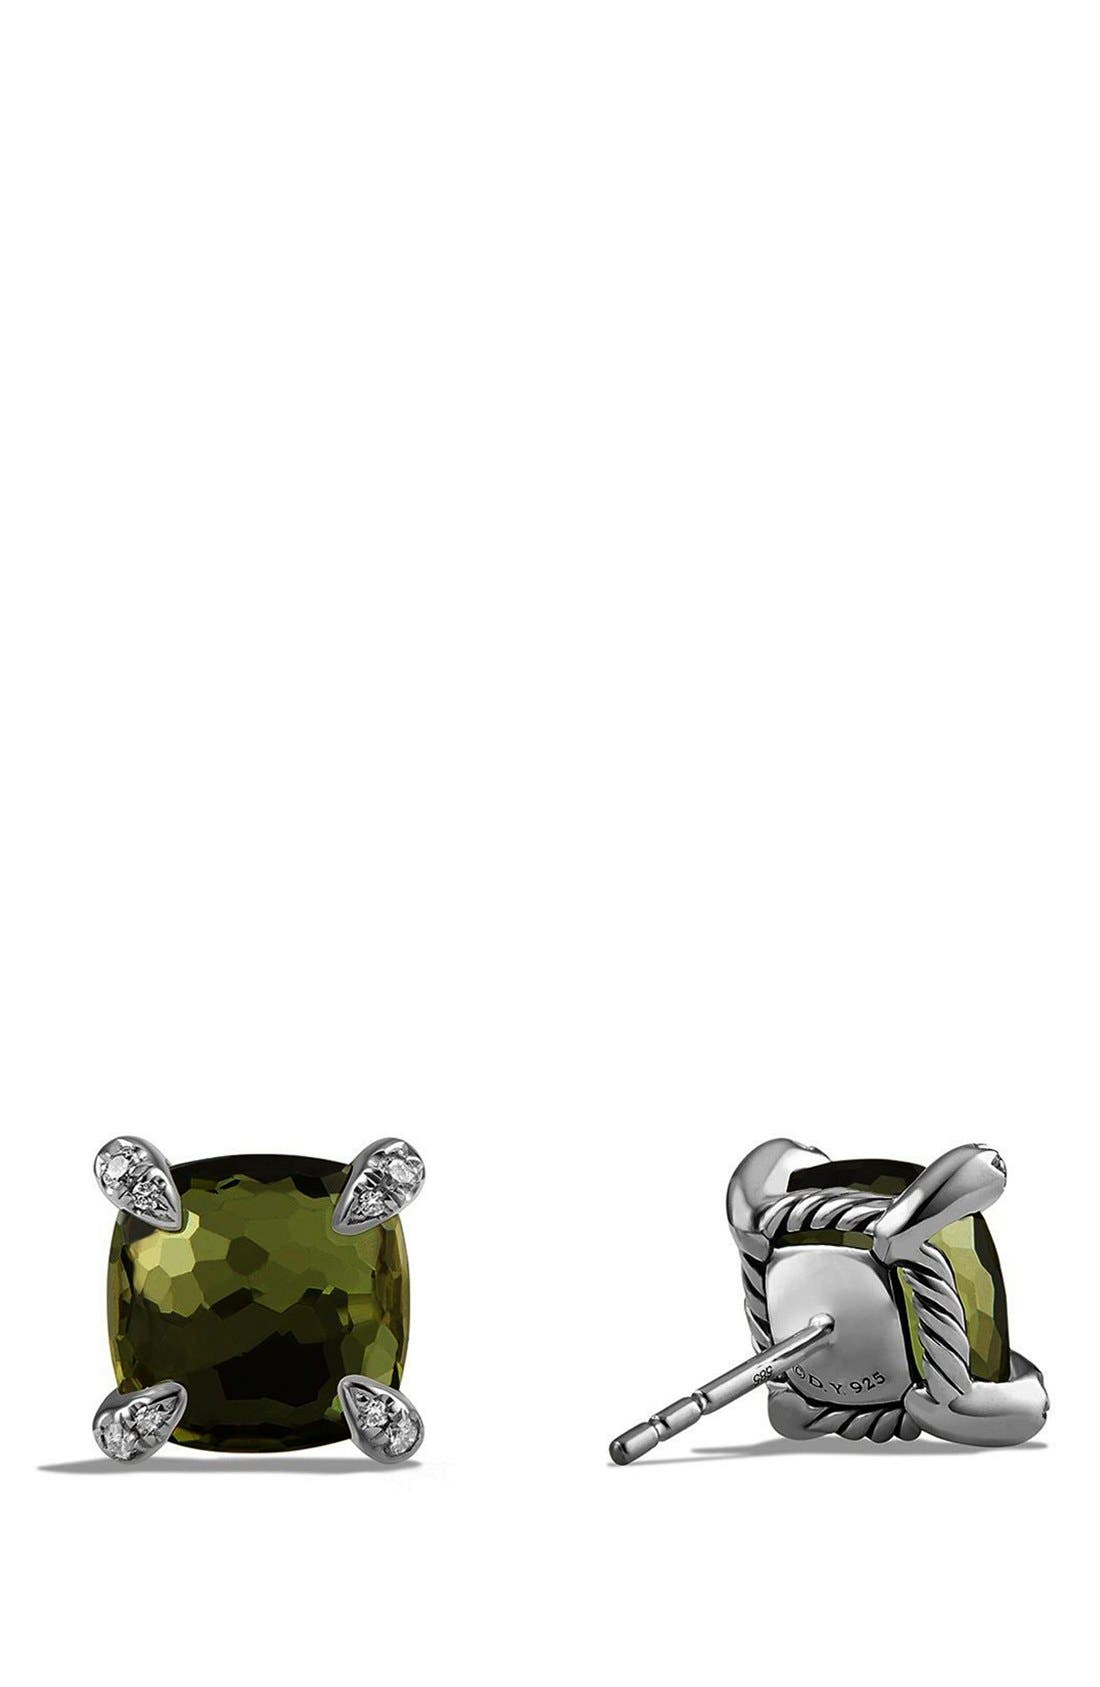 'Châtelaine' Earrings with Semiprecious Stones and Diamonds,                             Alternate thumbnail 3, color,                             SILVER/ CITRINE/ HEMATINE